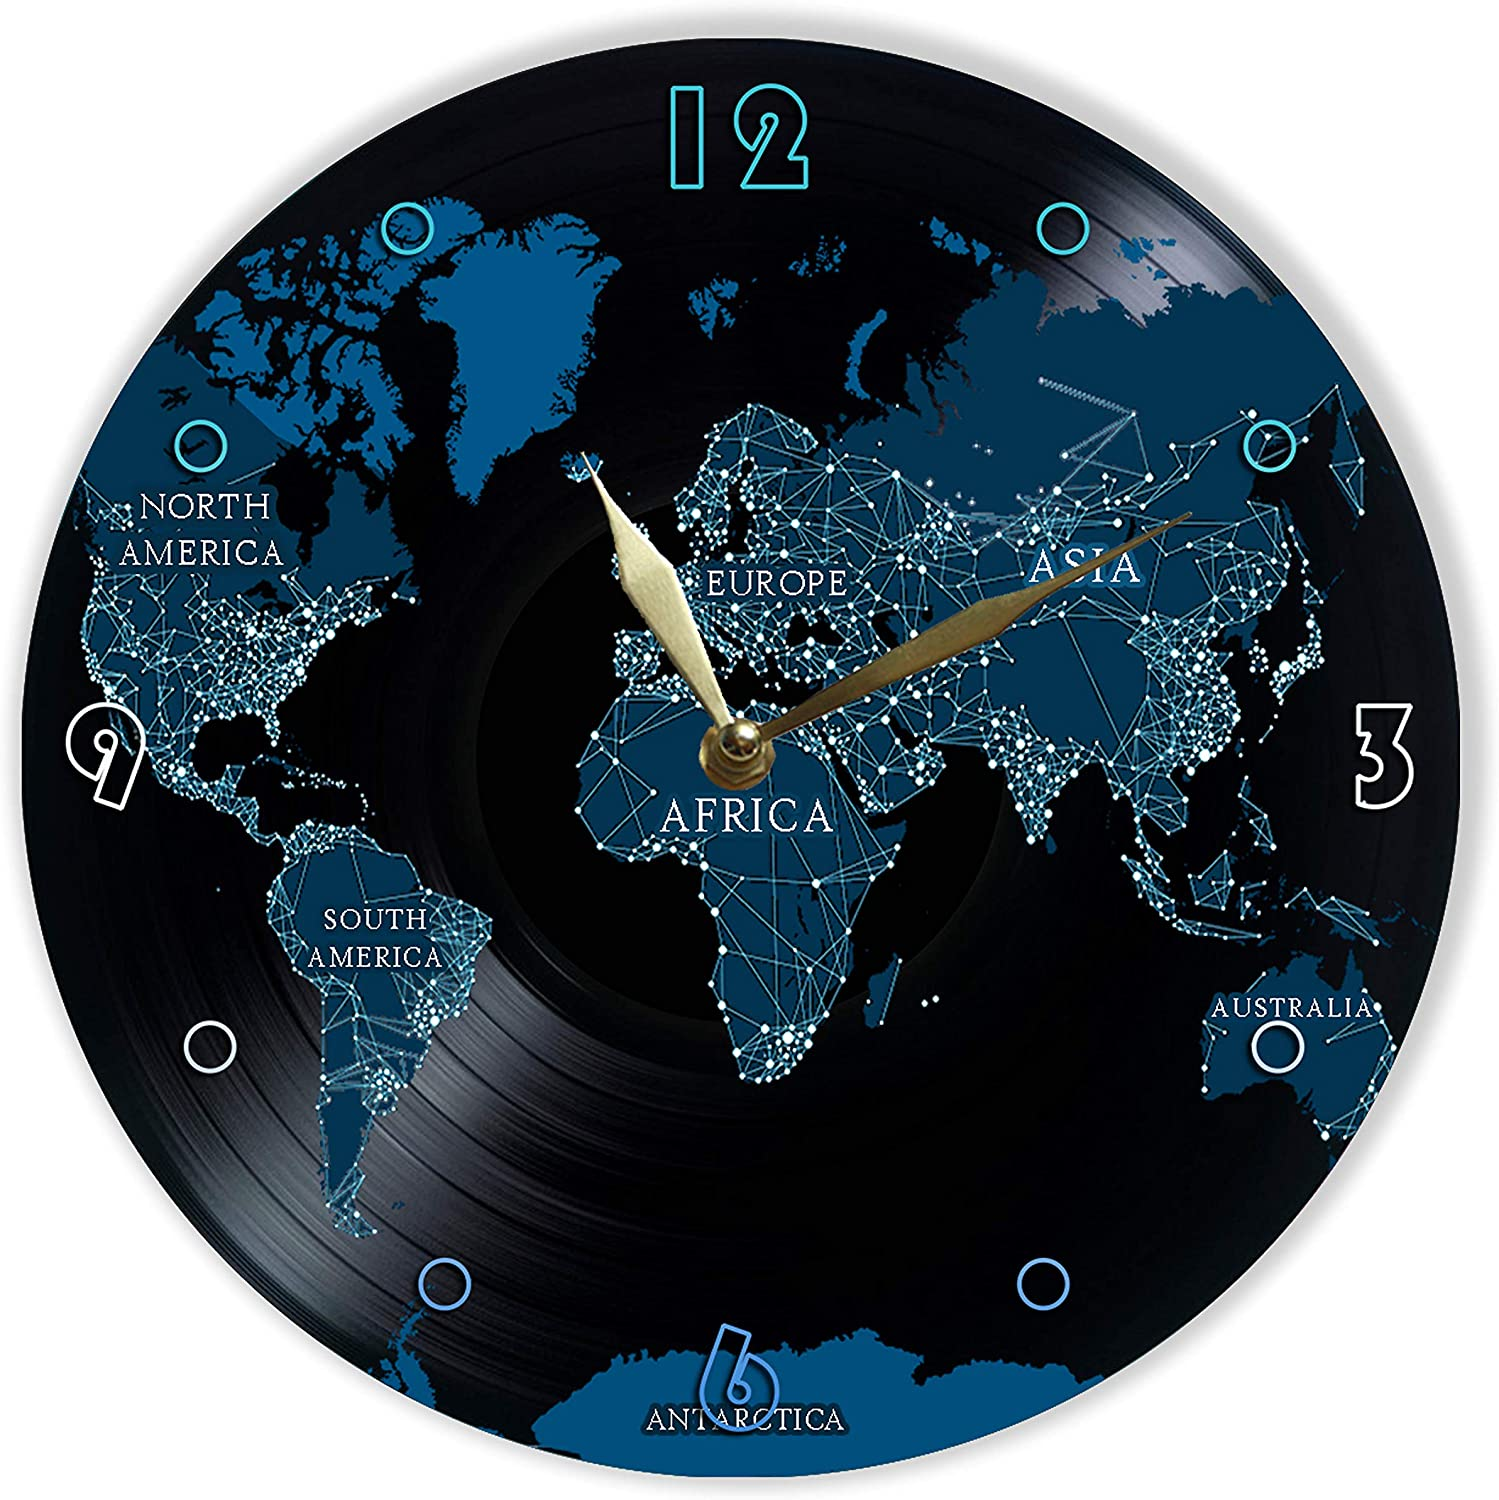 Wall Clock World Map Best Gift for Continents Unique Gifts for Fans World Map MiraG Continents Painted Vinyl Clock 12 The Best Home Decor